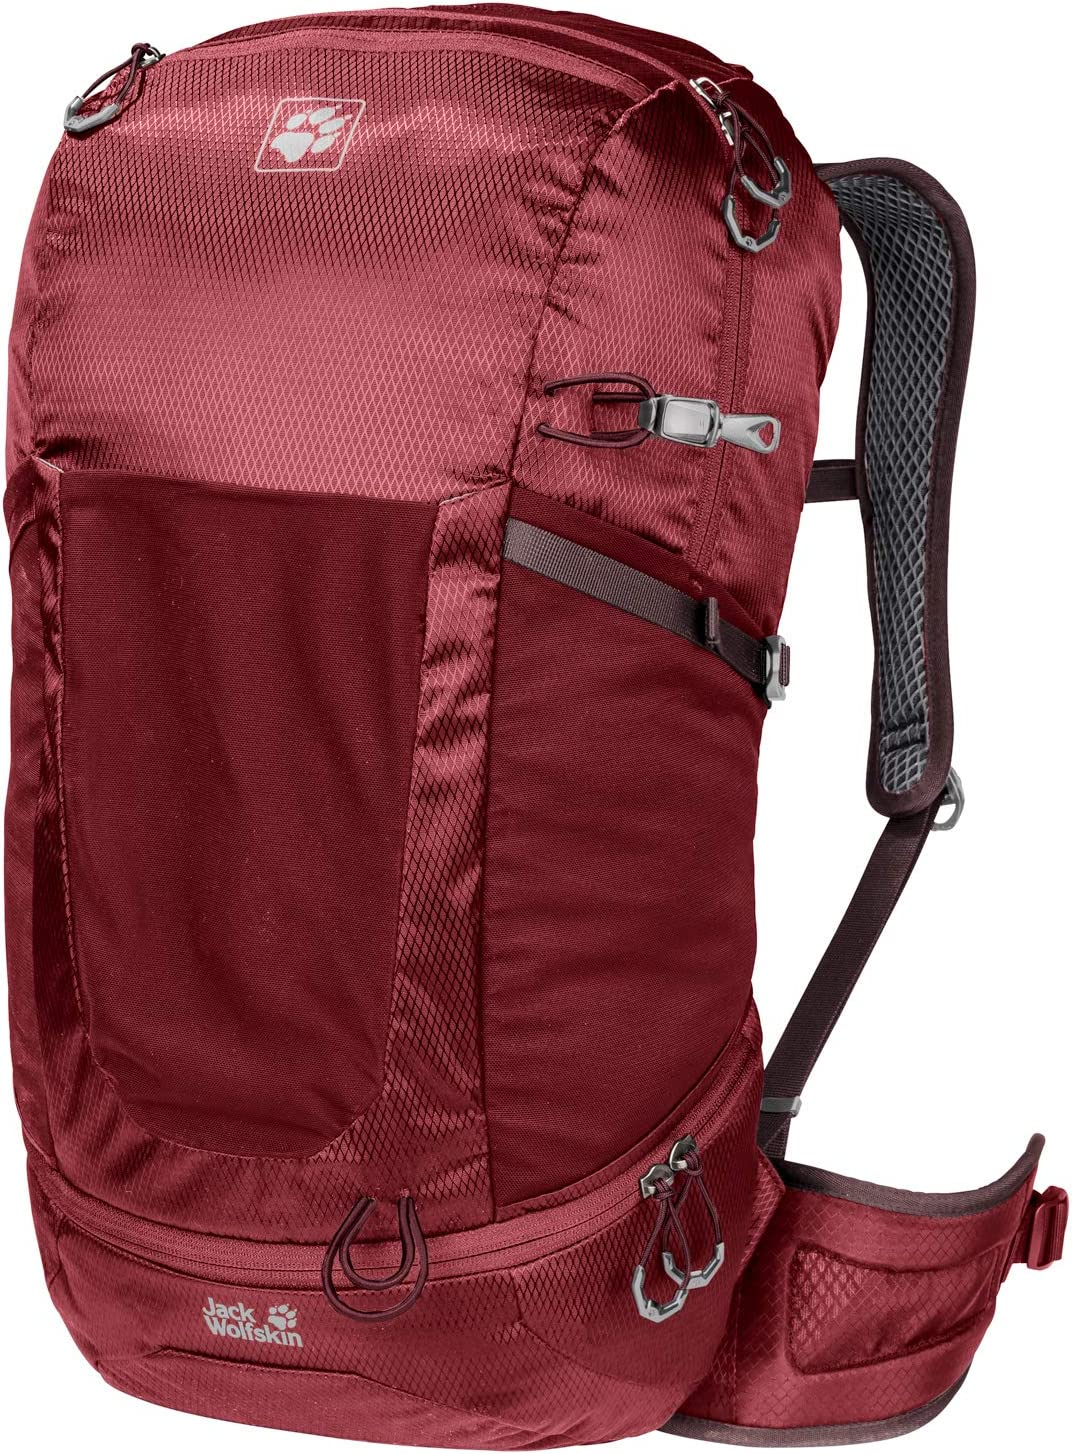 Jack Wolfskin Kingston 30L Lightweight Recycled Dual Chamber Backpack with Rain Cover